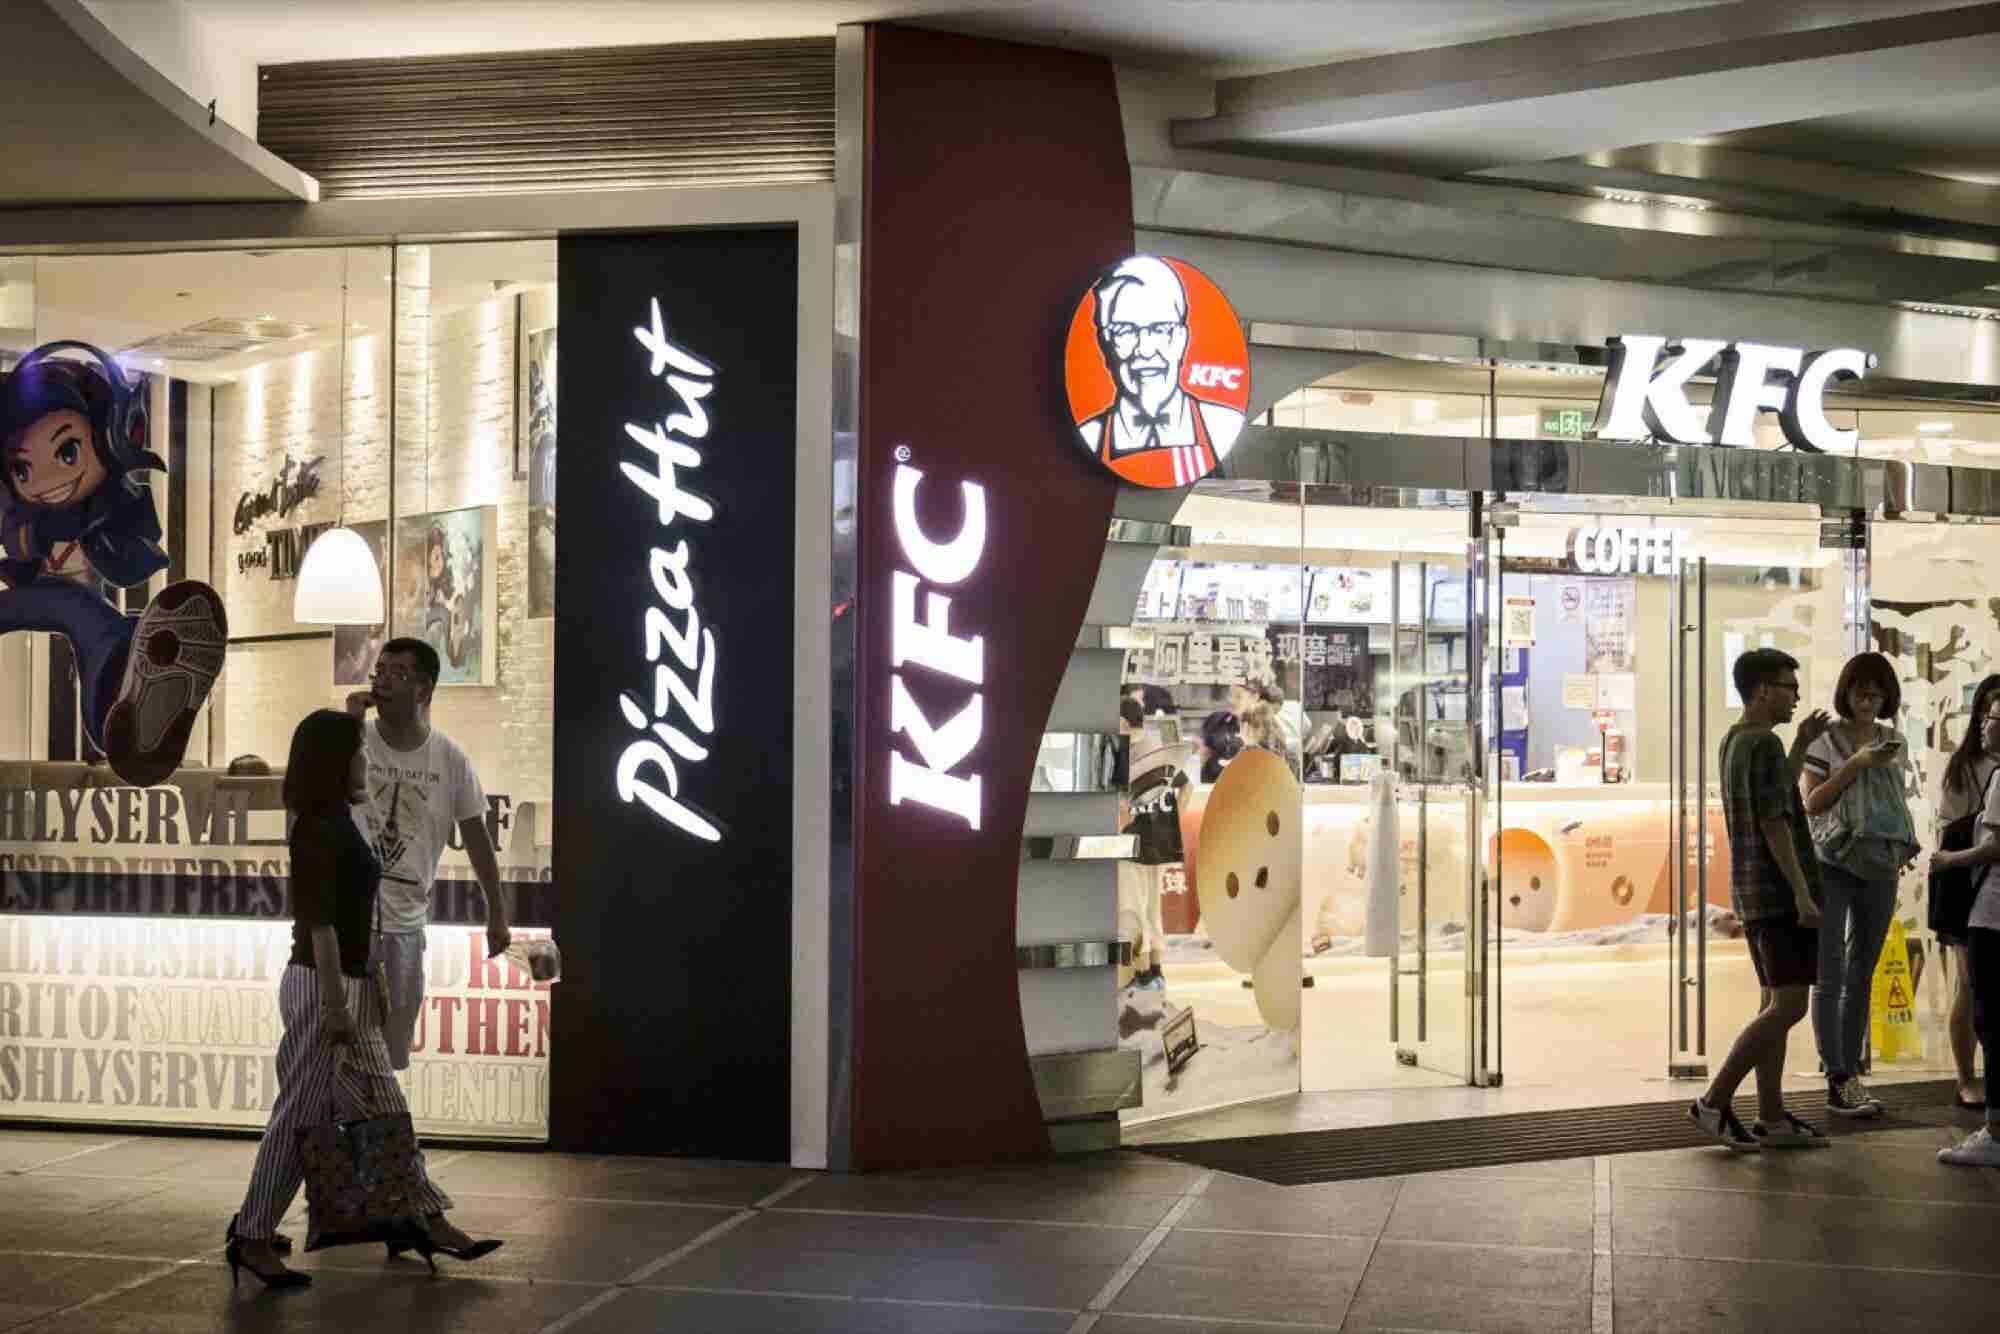 Yum! Brands Just Released Its Q1 Earnings. Here's What That Means for Taco Bell, Pizza Hut and KFC Franchises.